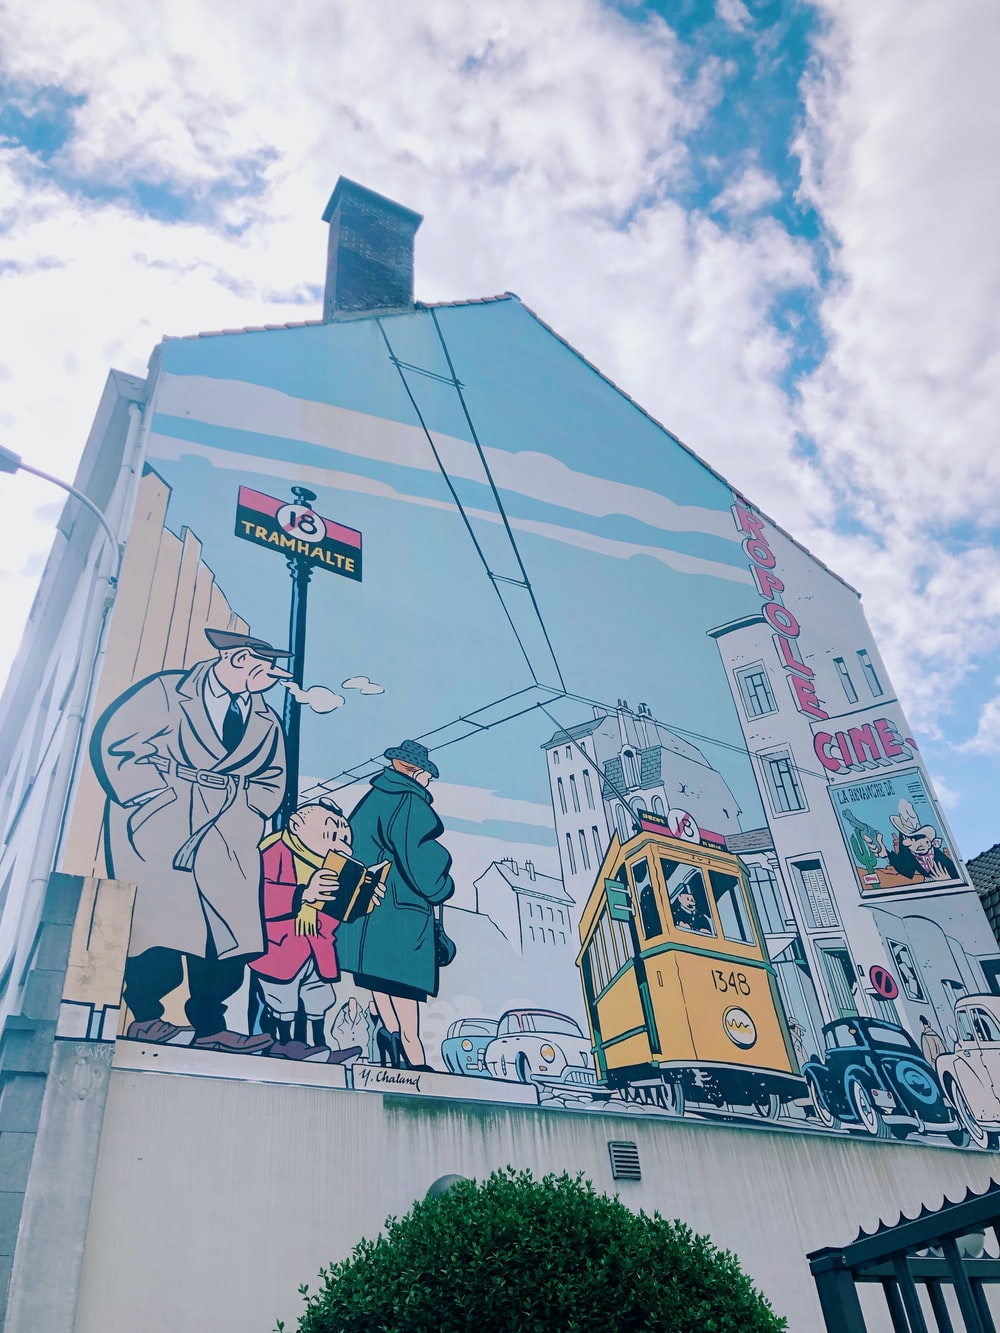 man and woman standing on top of building painting